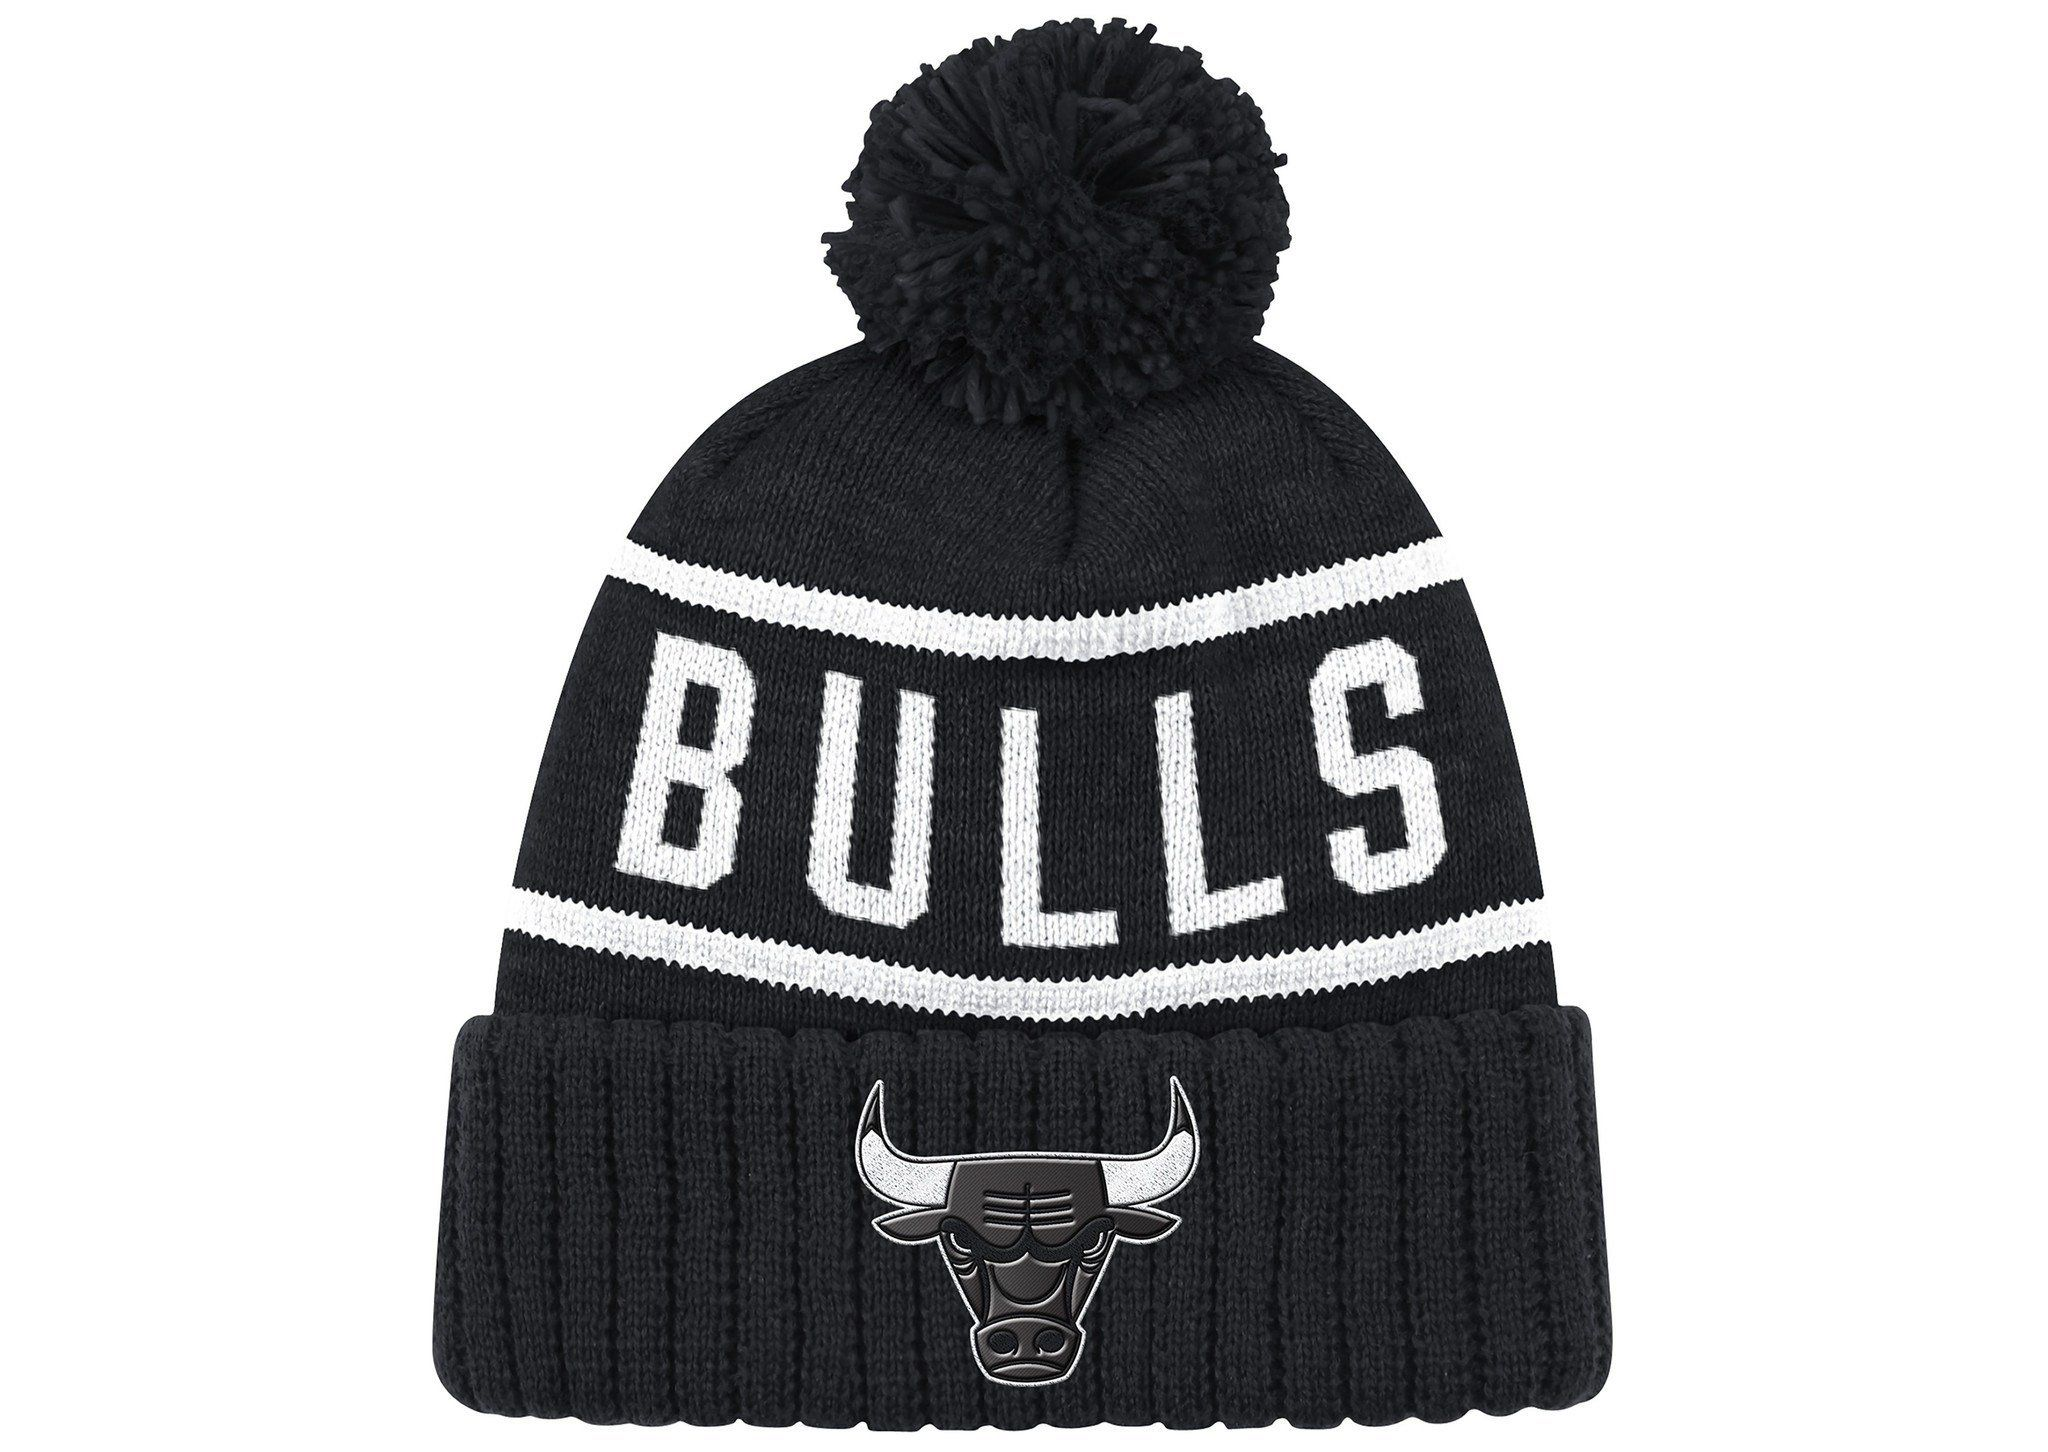 44c04c254c7 Chicago Bulls Reflective Patch High 5 Knit Hat by Mitchell   Ness ...